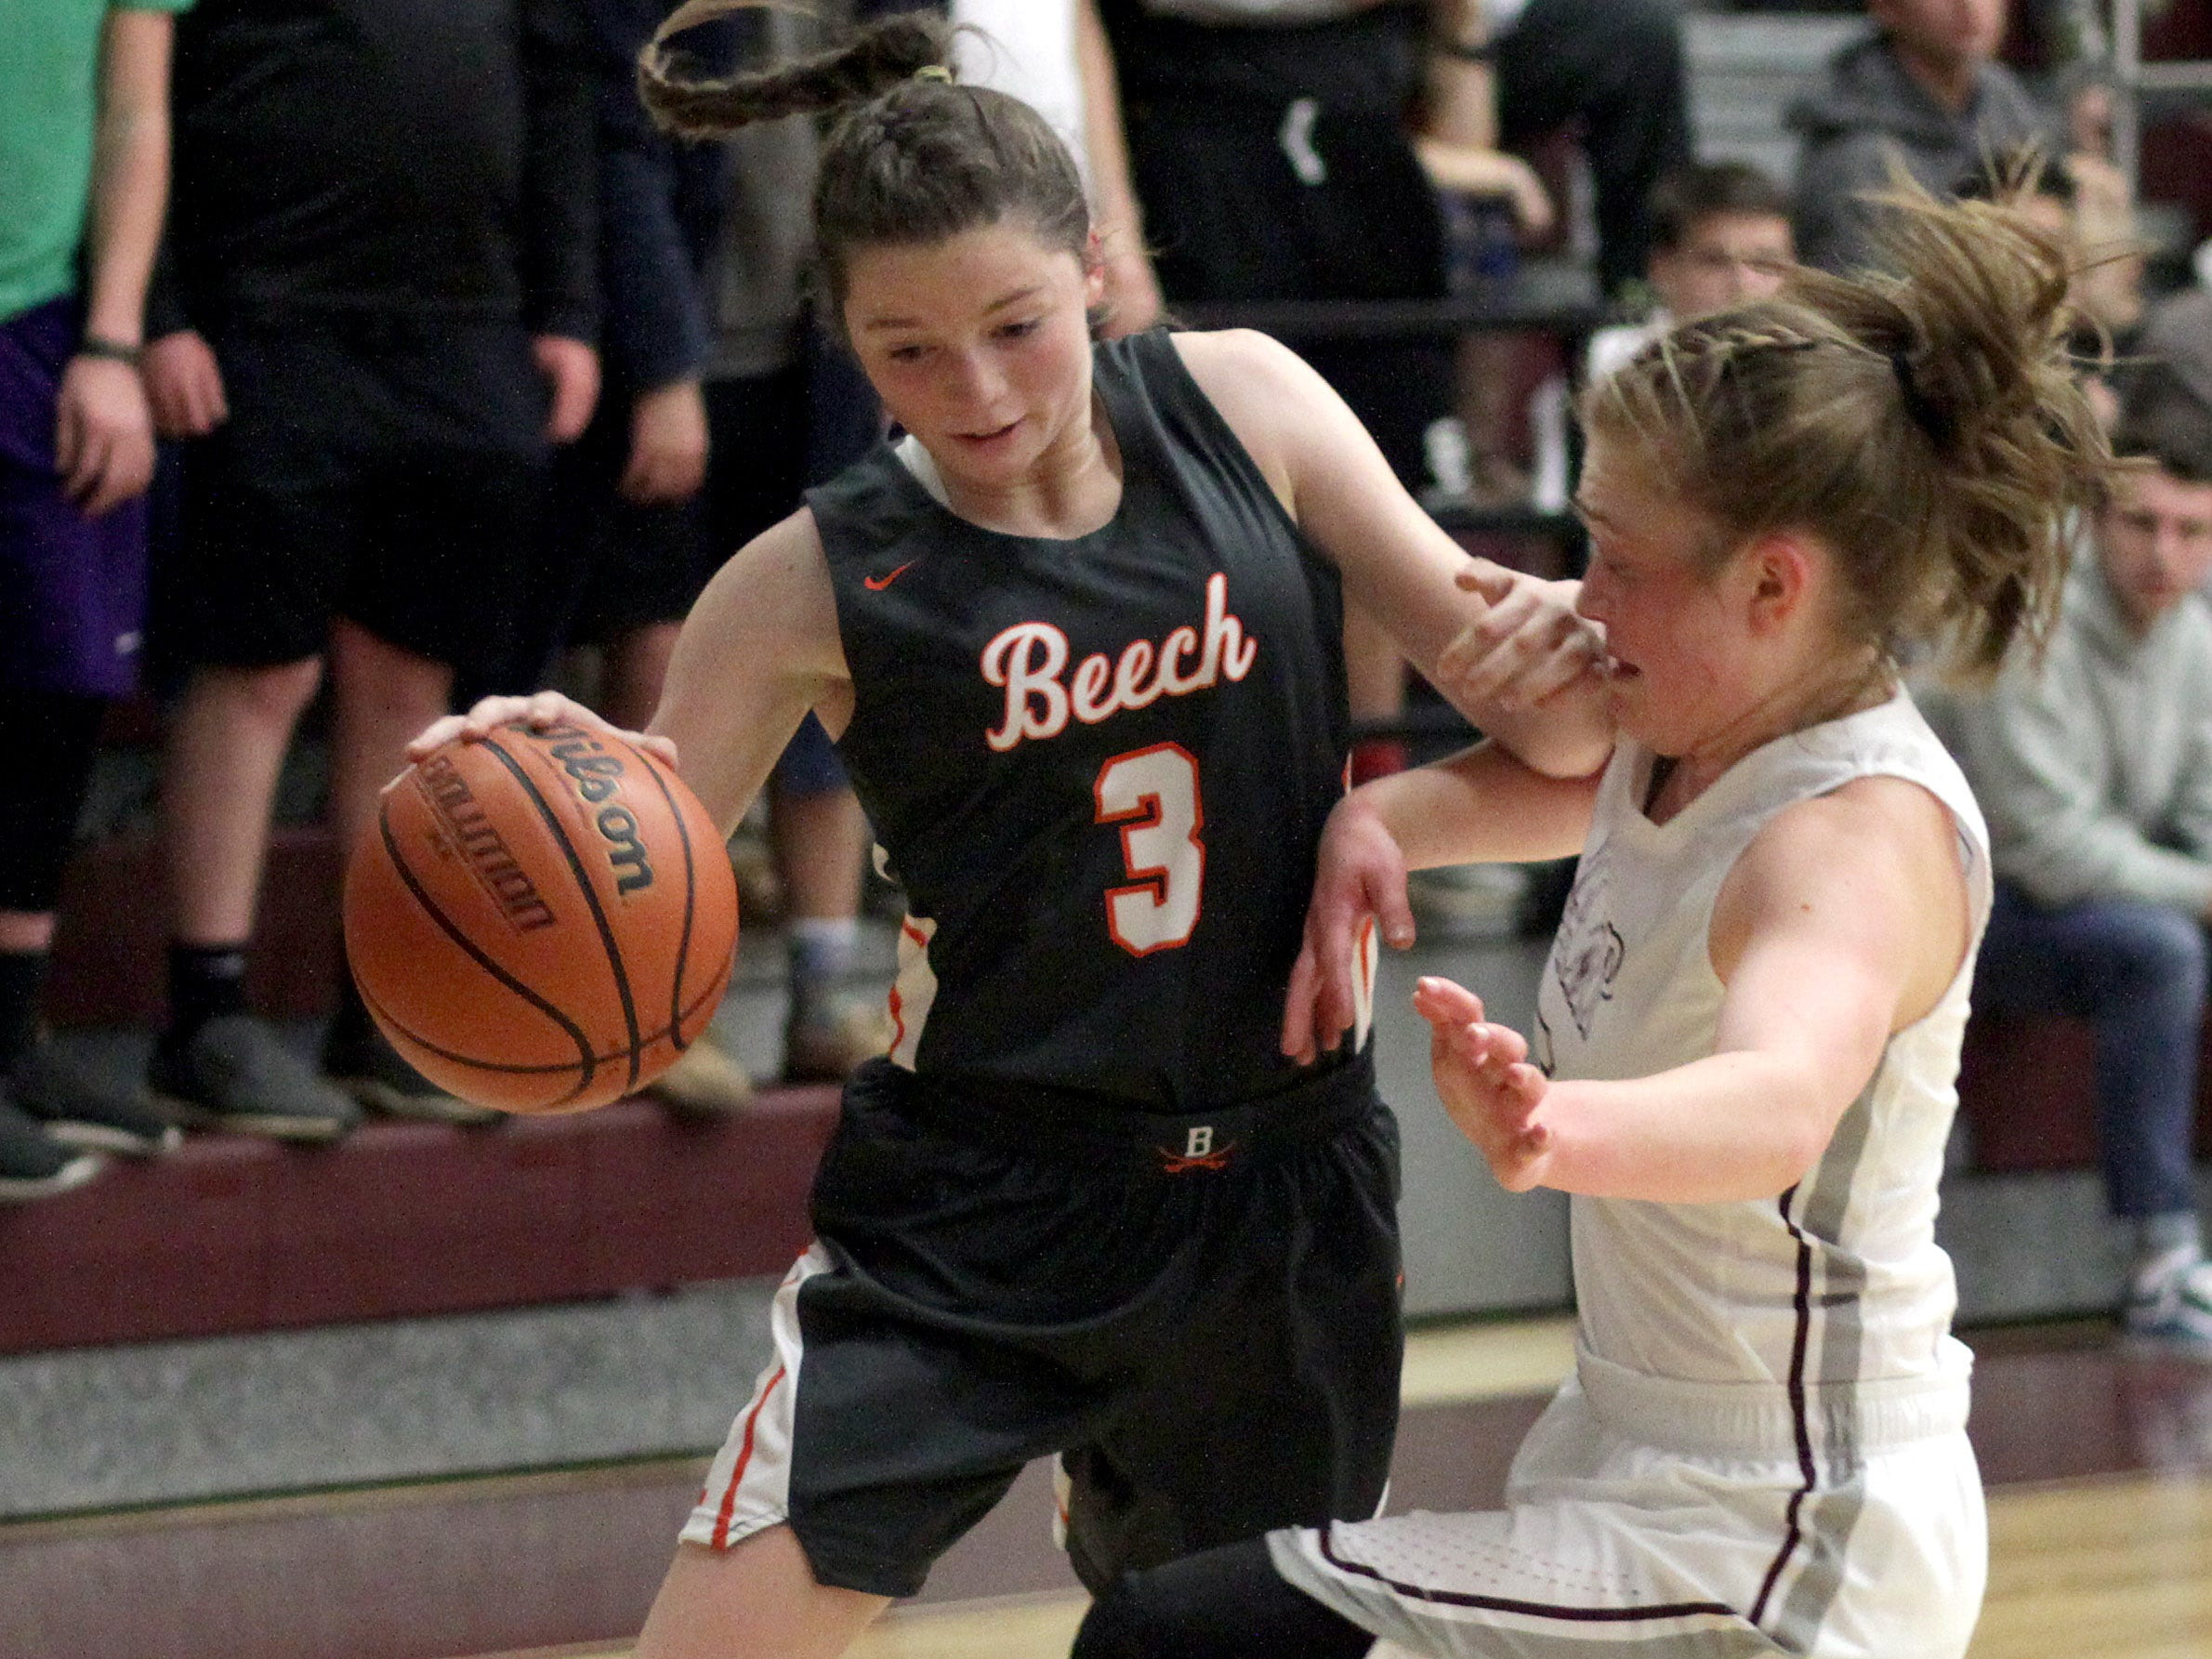 L-R Beech's Jana Claire Swafford drives into Station Camp's Keely Gatterland on Friday, December 7, 2018.